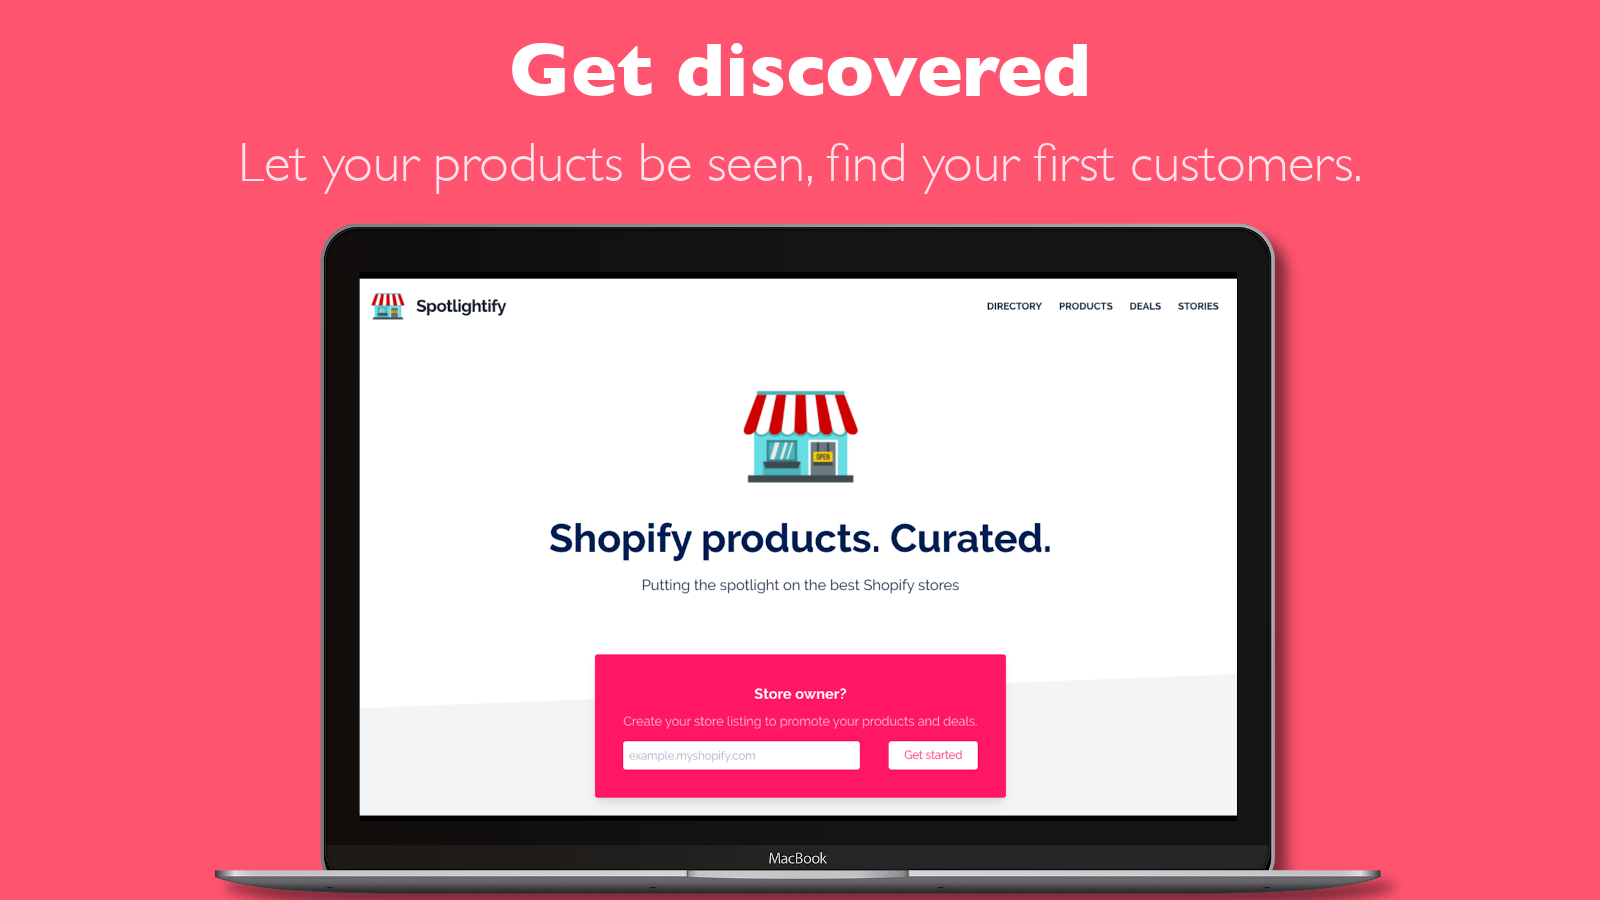 Find your first customers, get discovered.